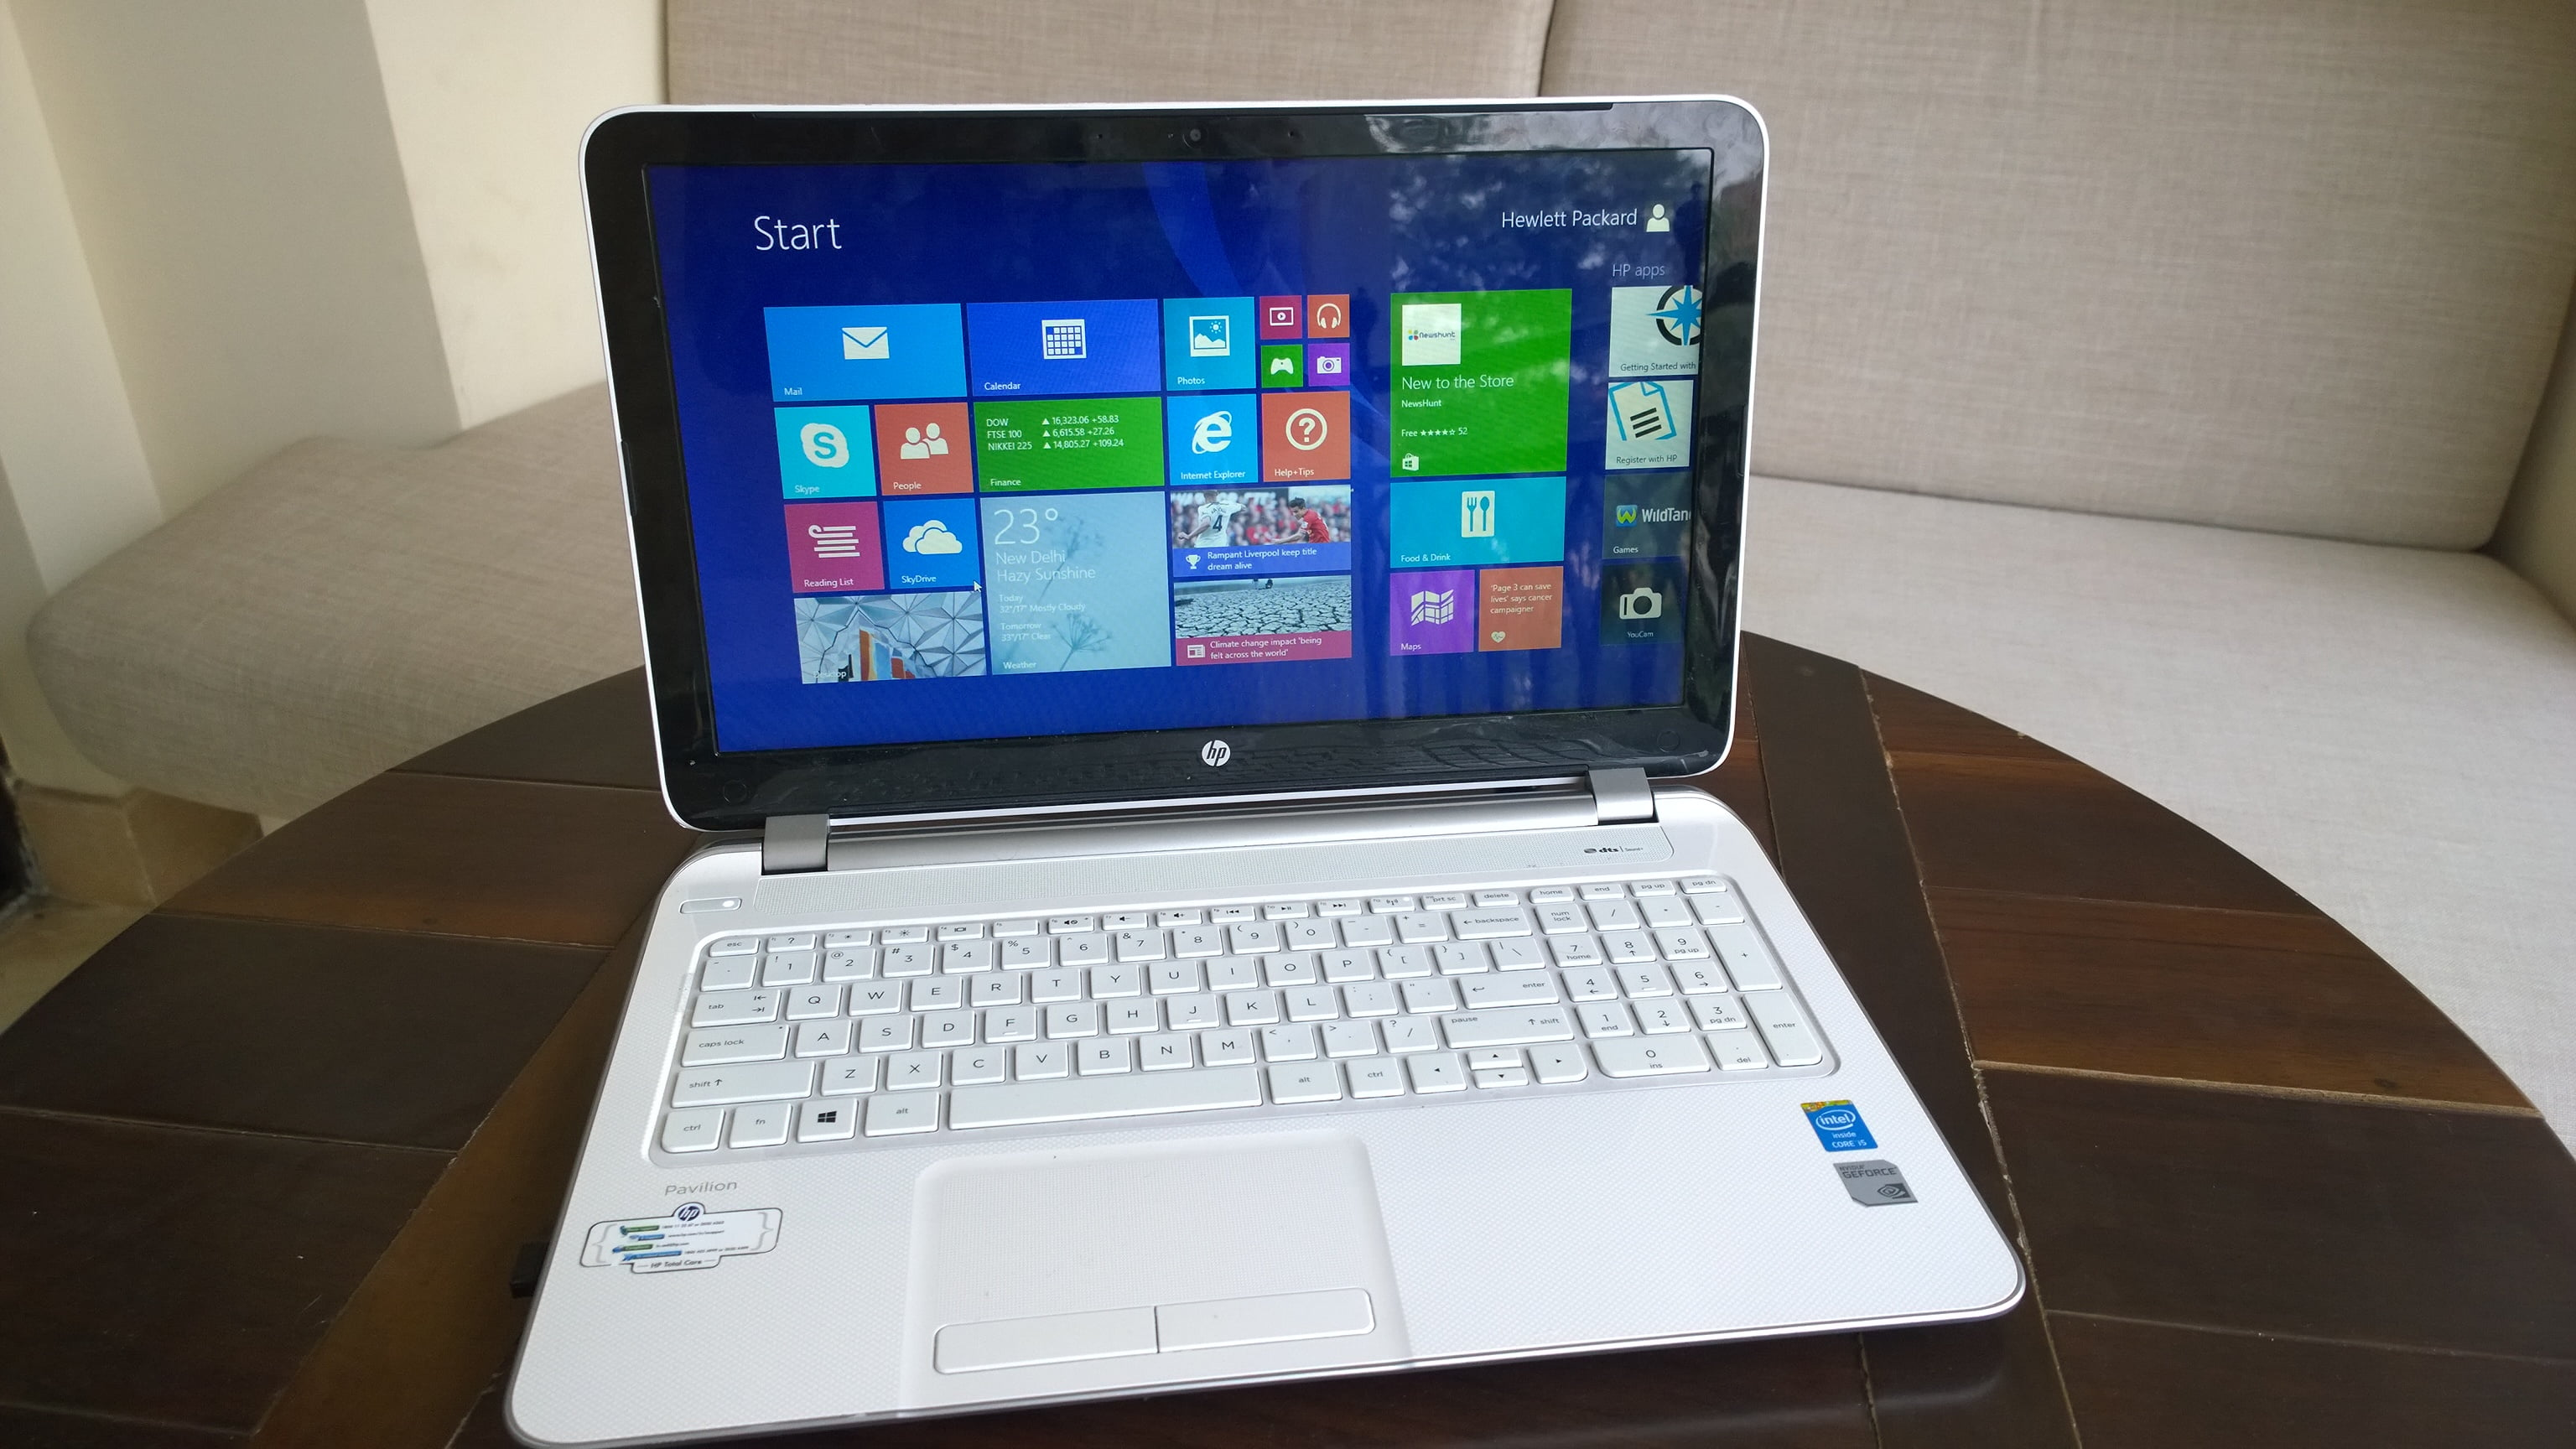 HP Pavilion 15-n209tx Notebook PC Review